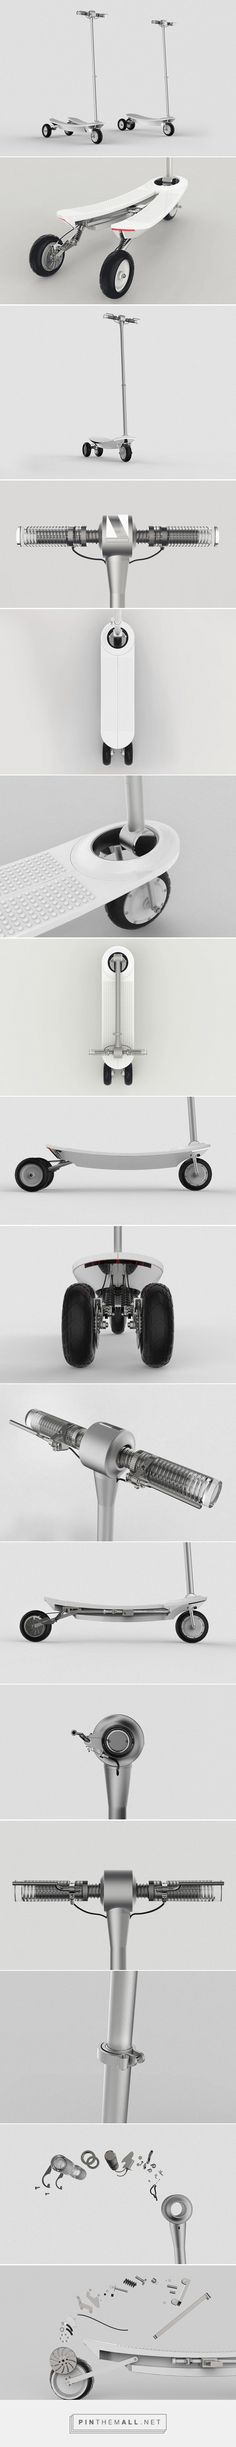 A Cooler Scooter | Yanko Design - created via https://pinthemall.net